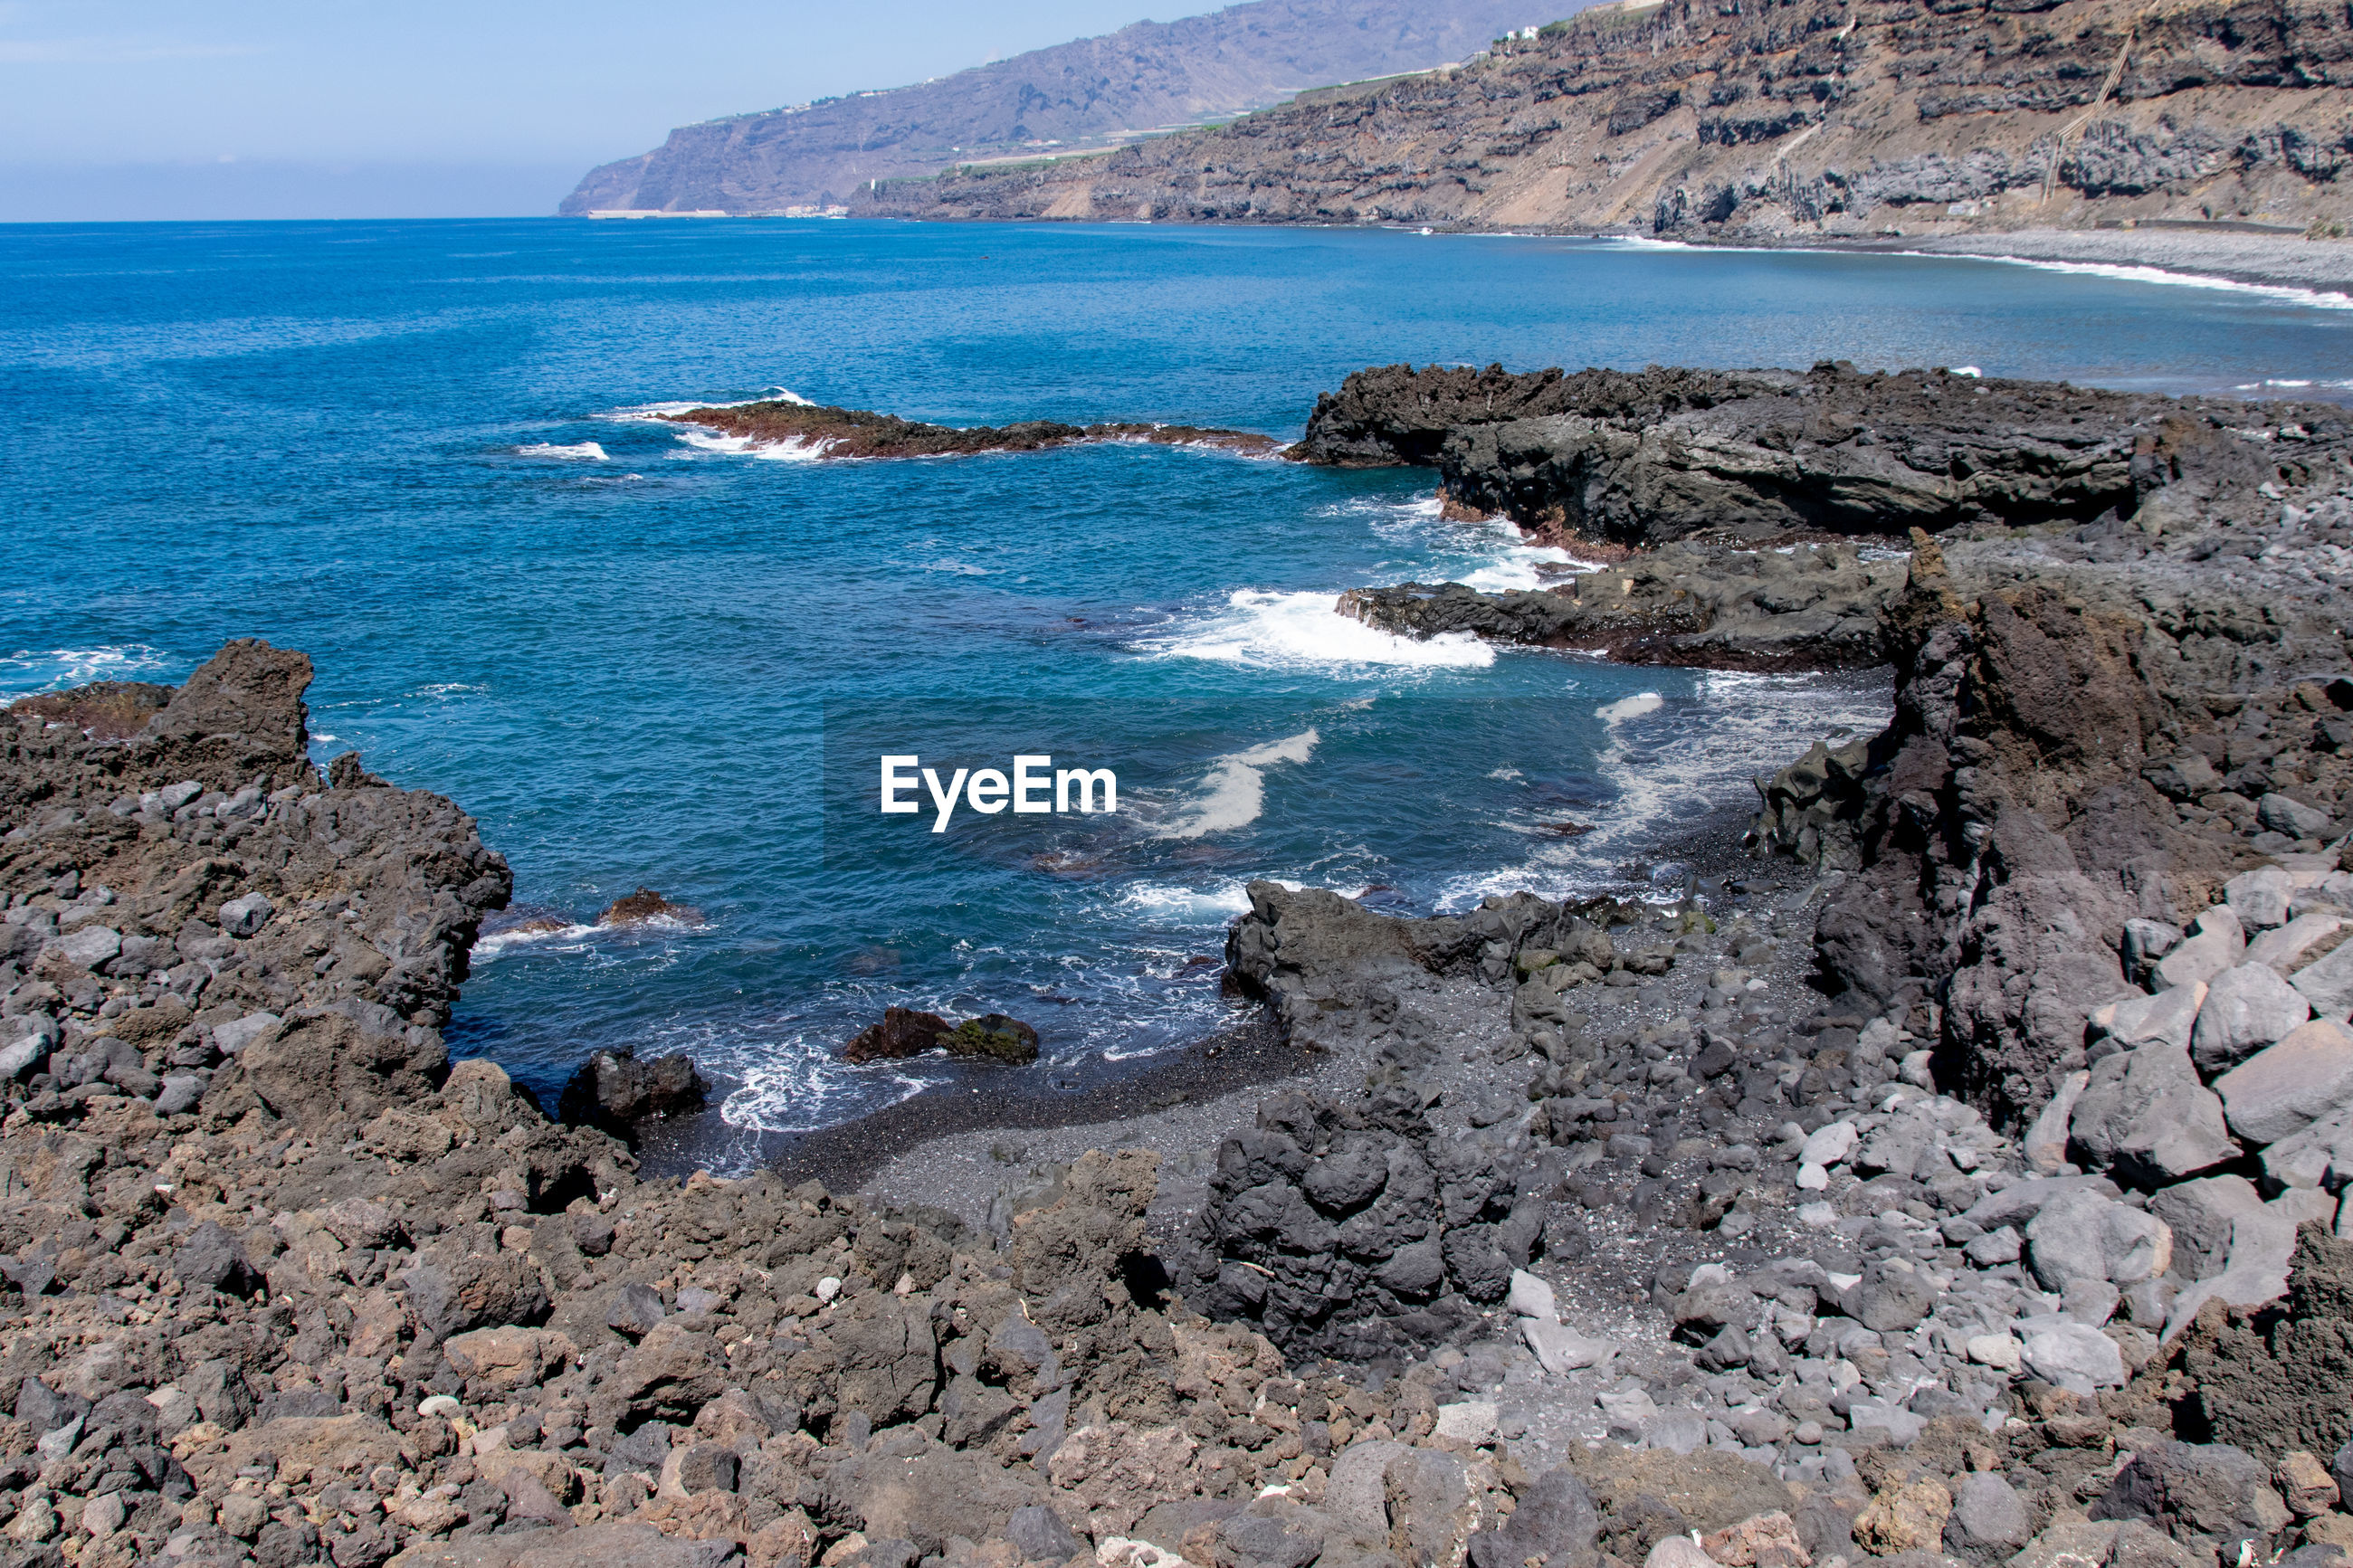 Edge of volcanic lava field meeting atlantic ocean at playa los guirres, la palma, canary islands